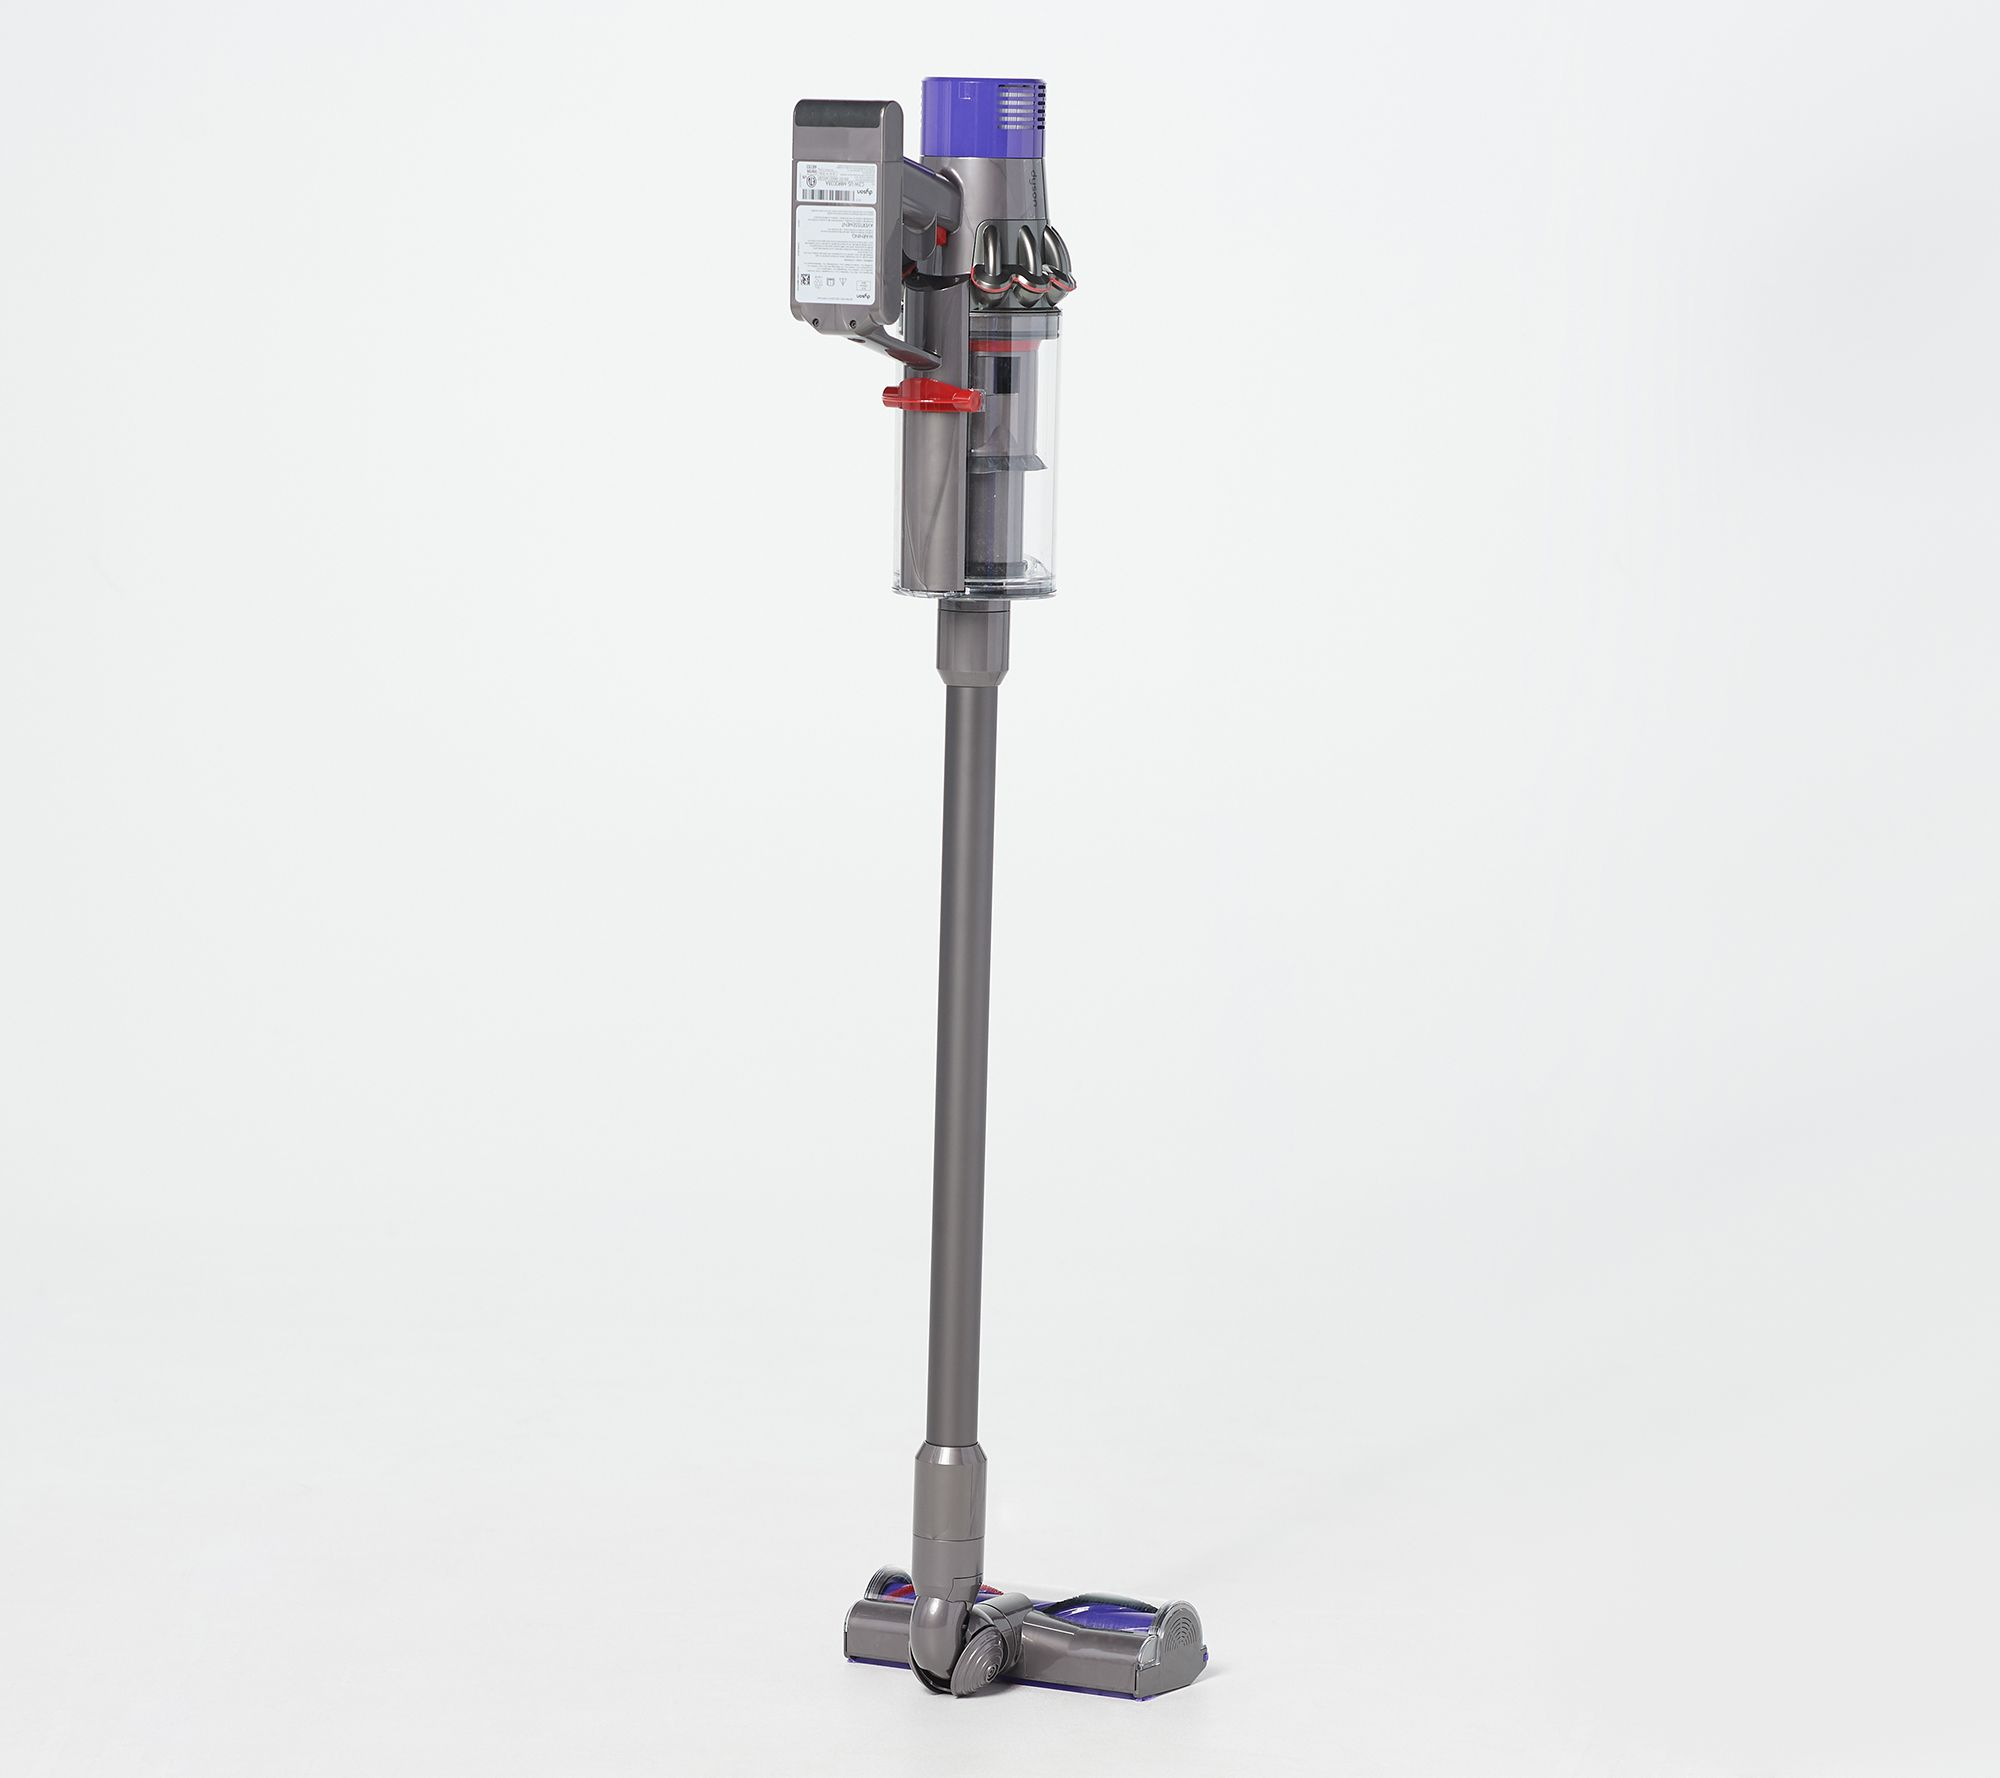 Dyson Cyclone V10 Absolute Pro Cordfree Vacuum with 9